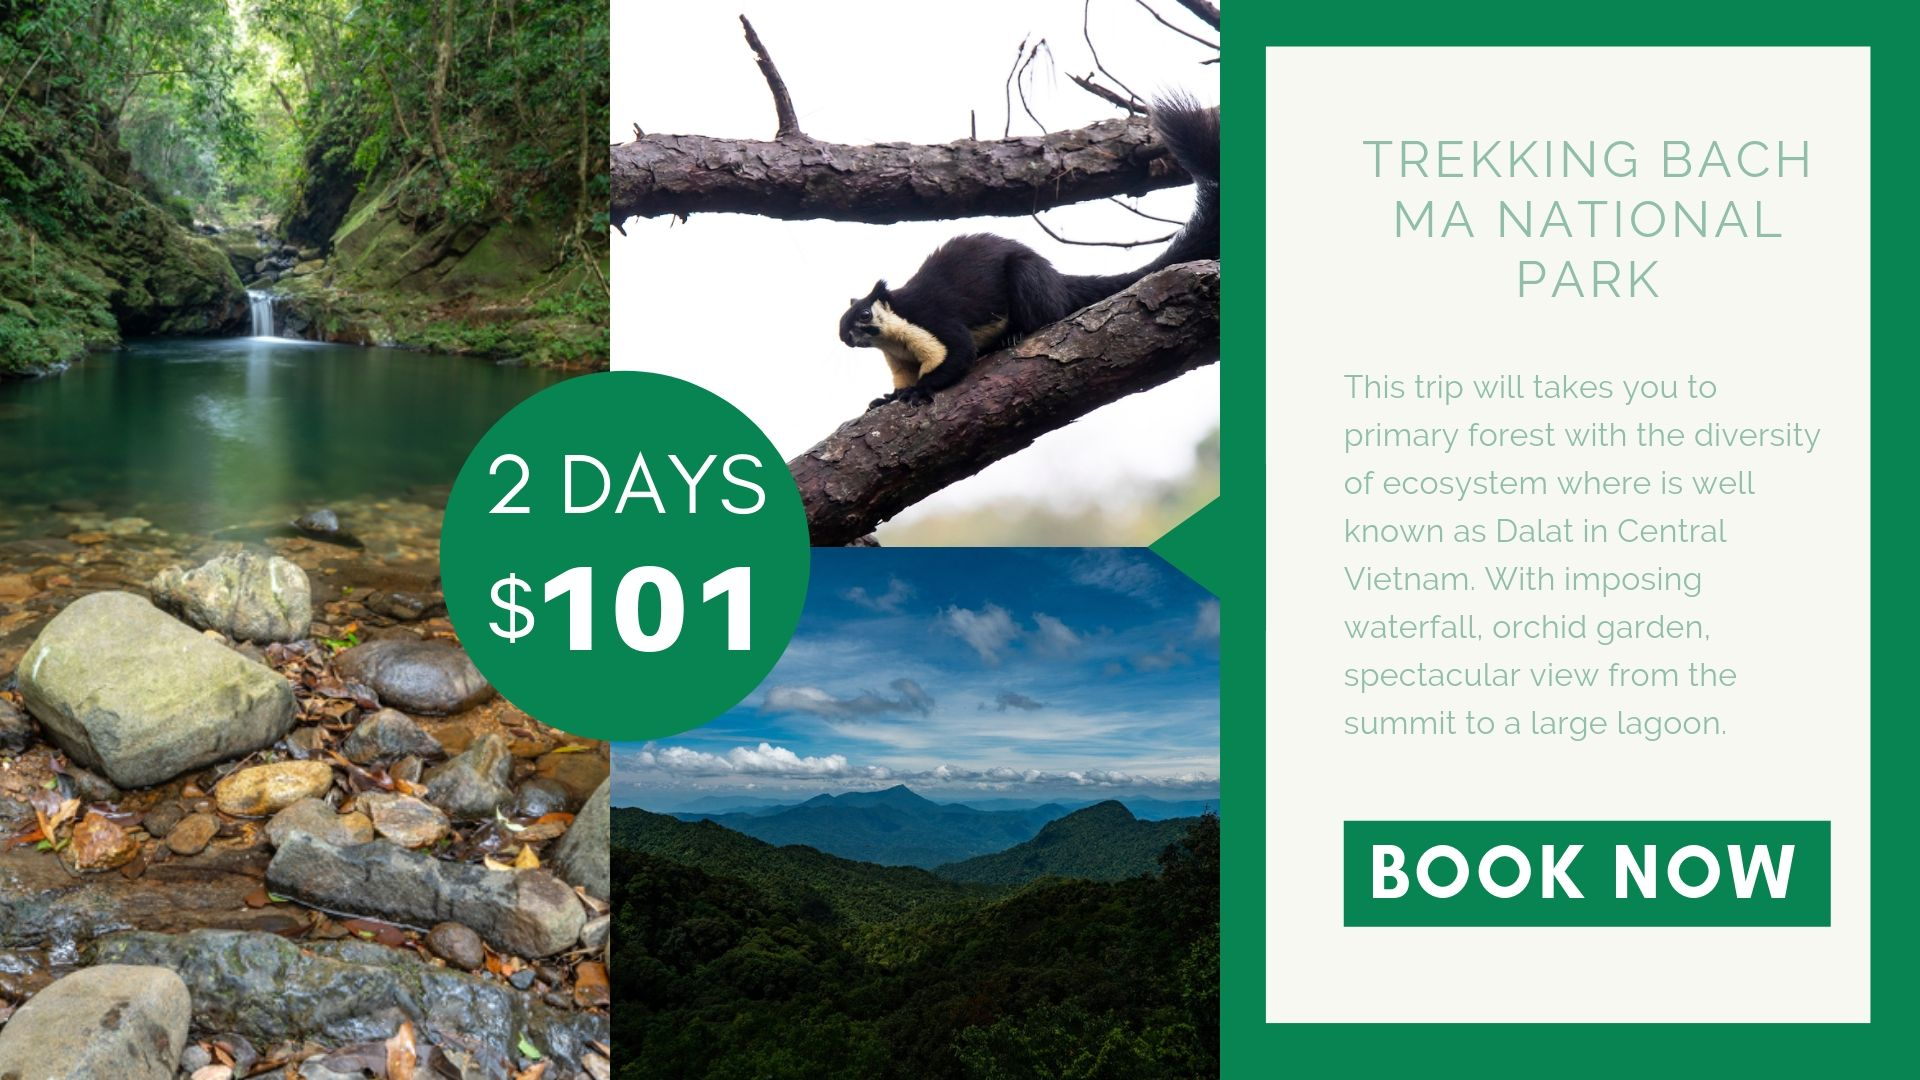 Tour Trekking Bach Ma National Park 02 Days